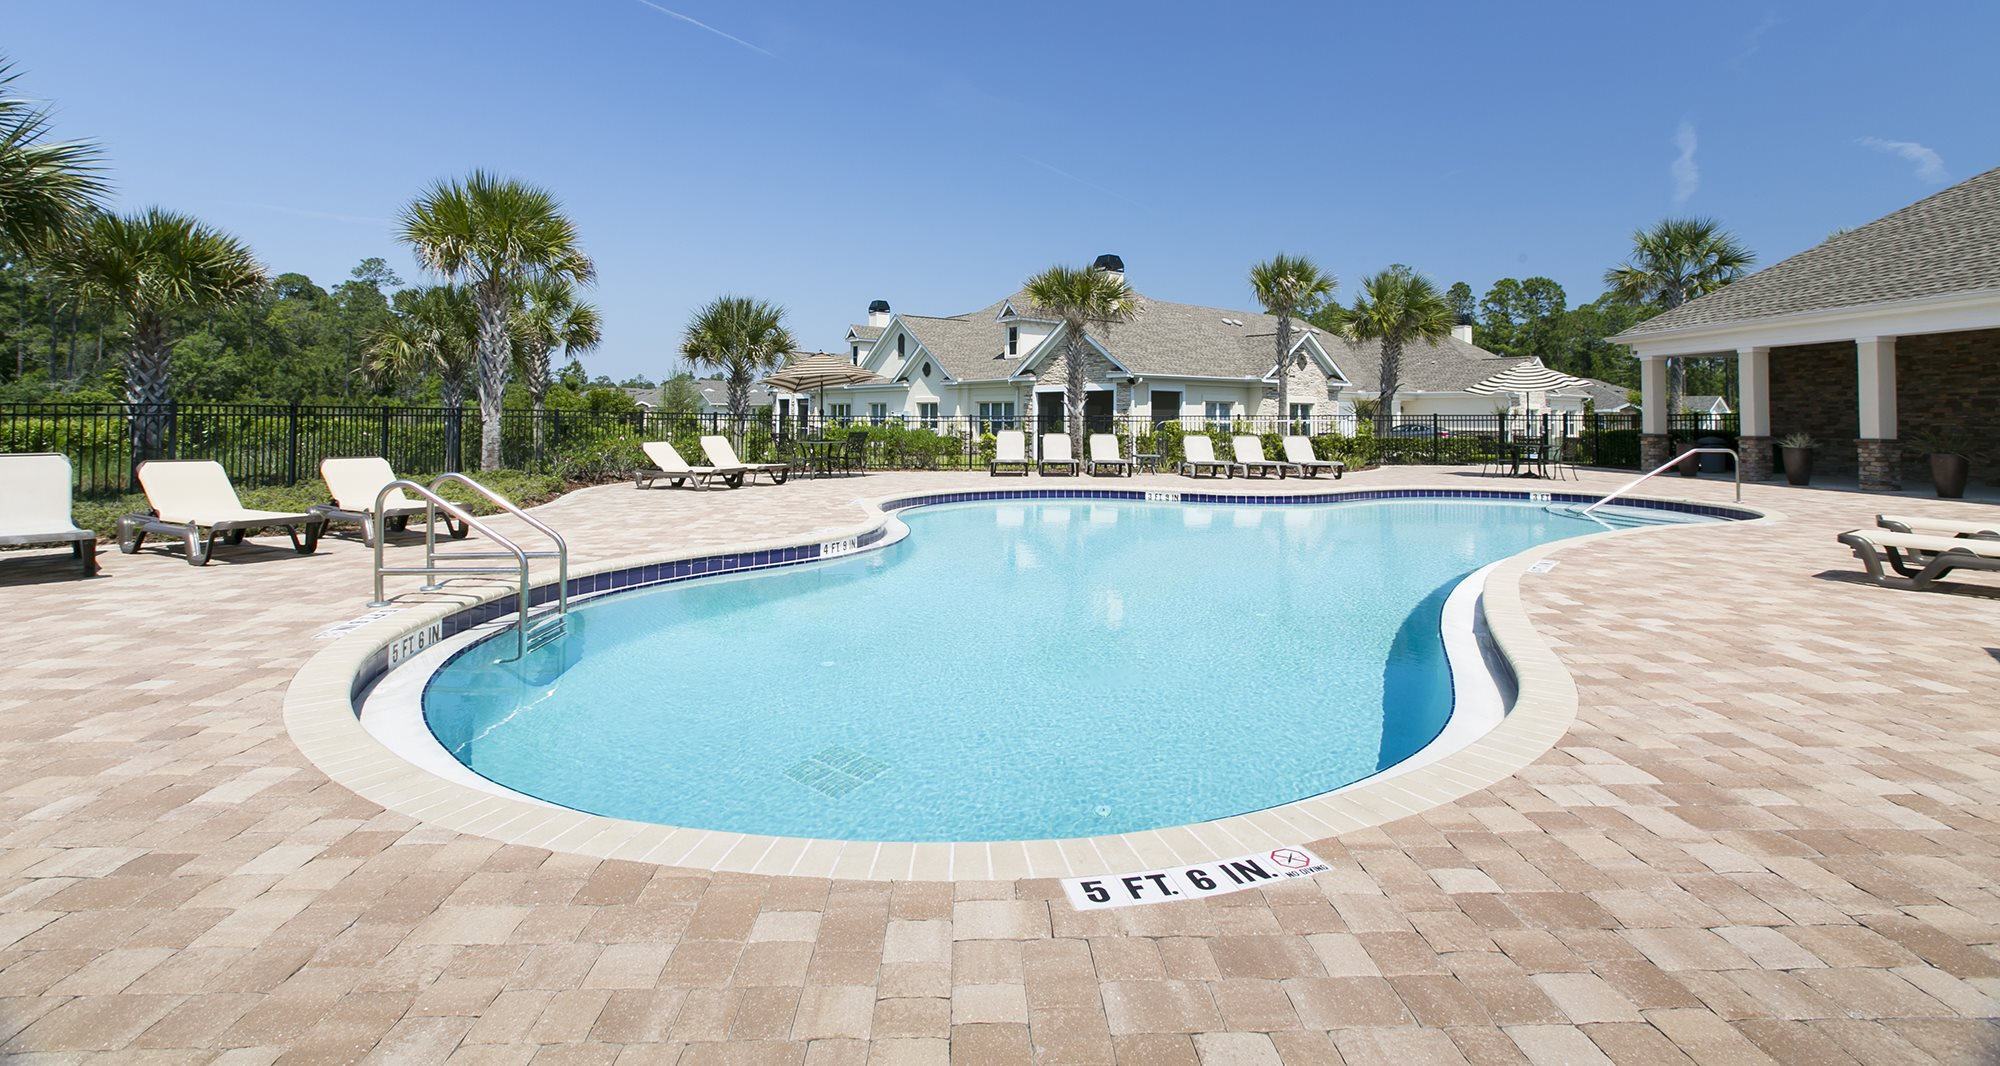 townhome rentals in palm coast fl reserve at brookhaven concord rents concord management townhome rentals in palm coast fl